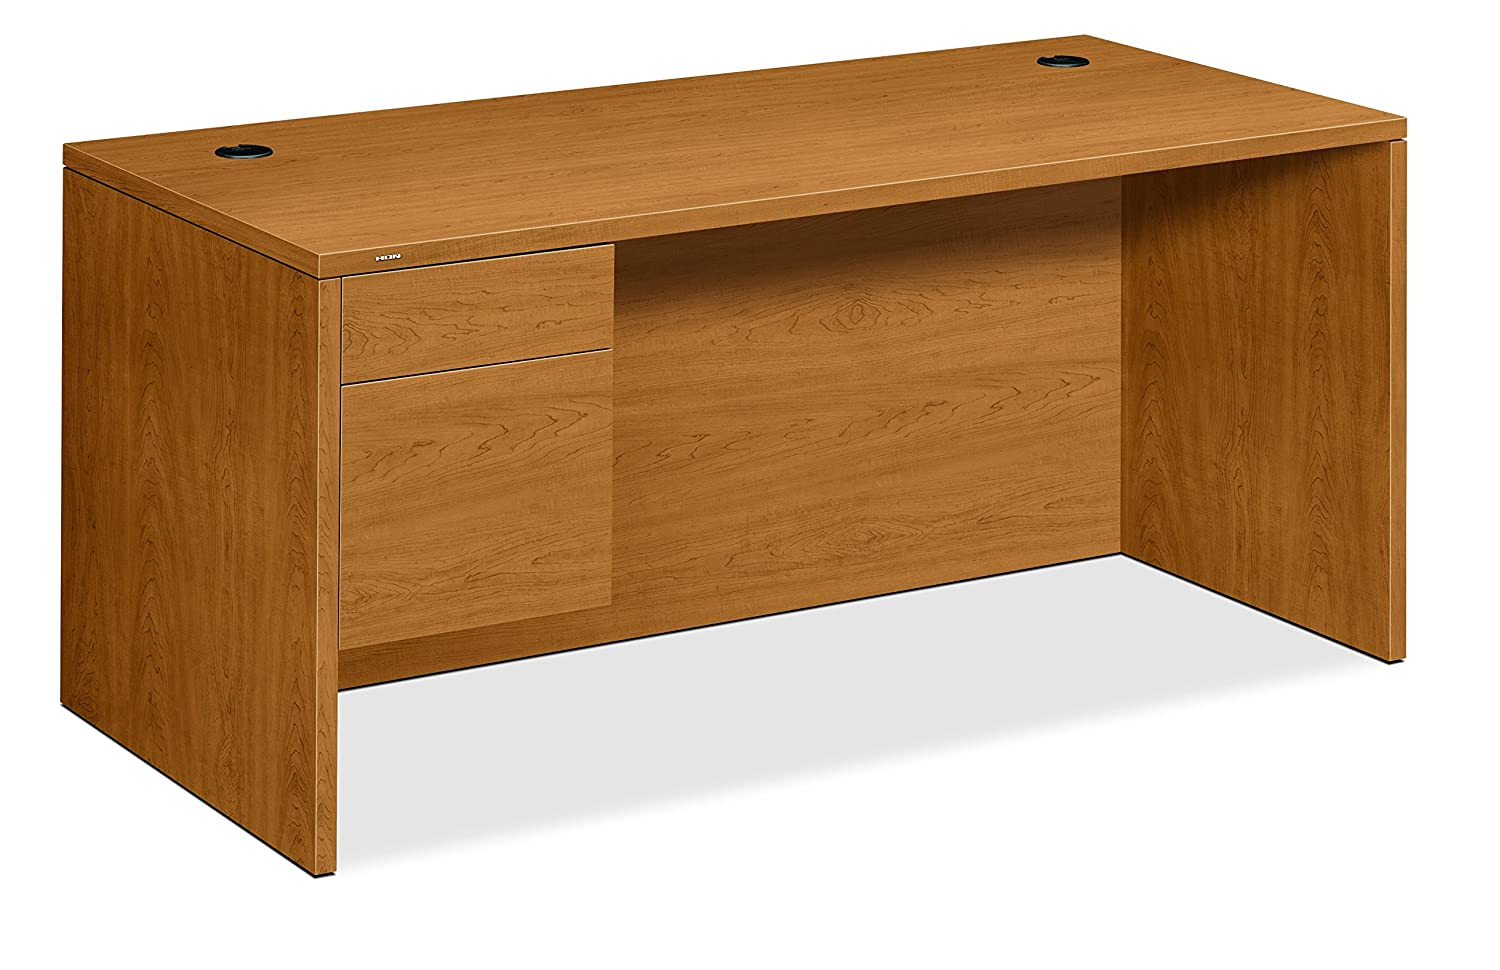 HON Bow Top Double Pedestal Desk, 72 by 36 by 29-1/2-Inch, Harvest S.P. Richards Company HON10595CC